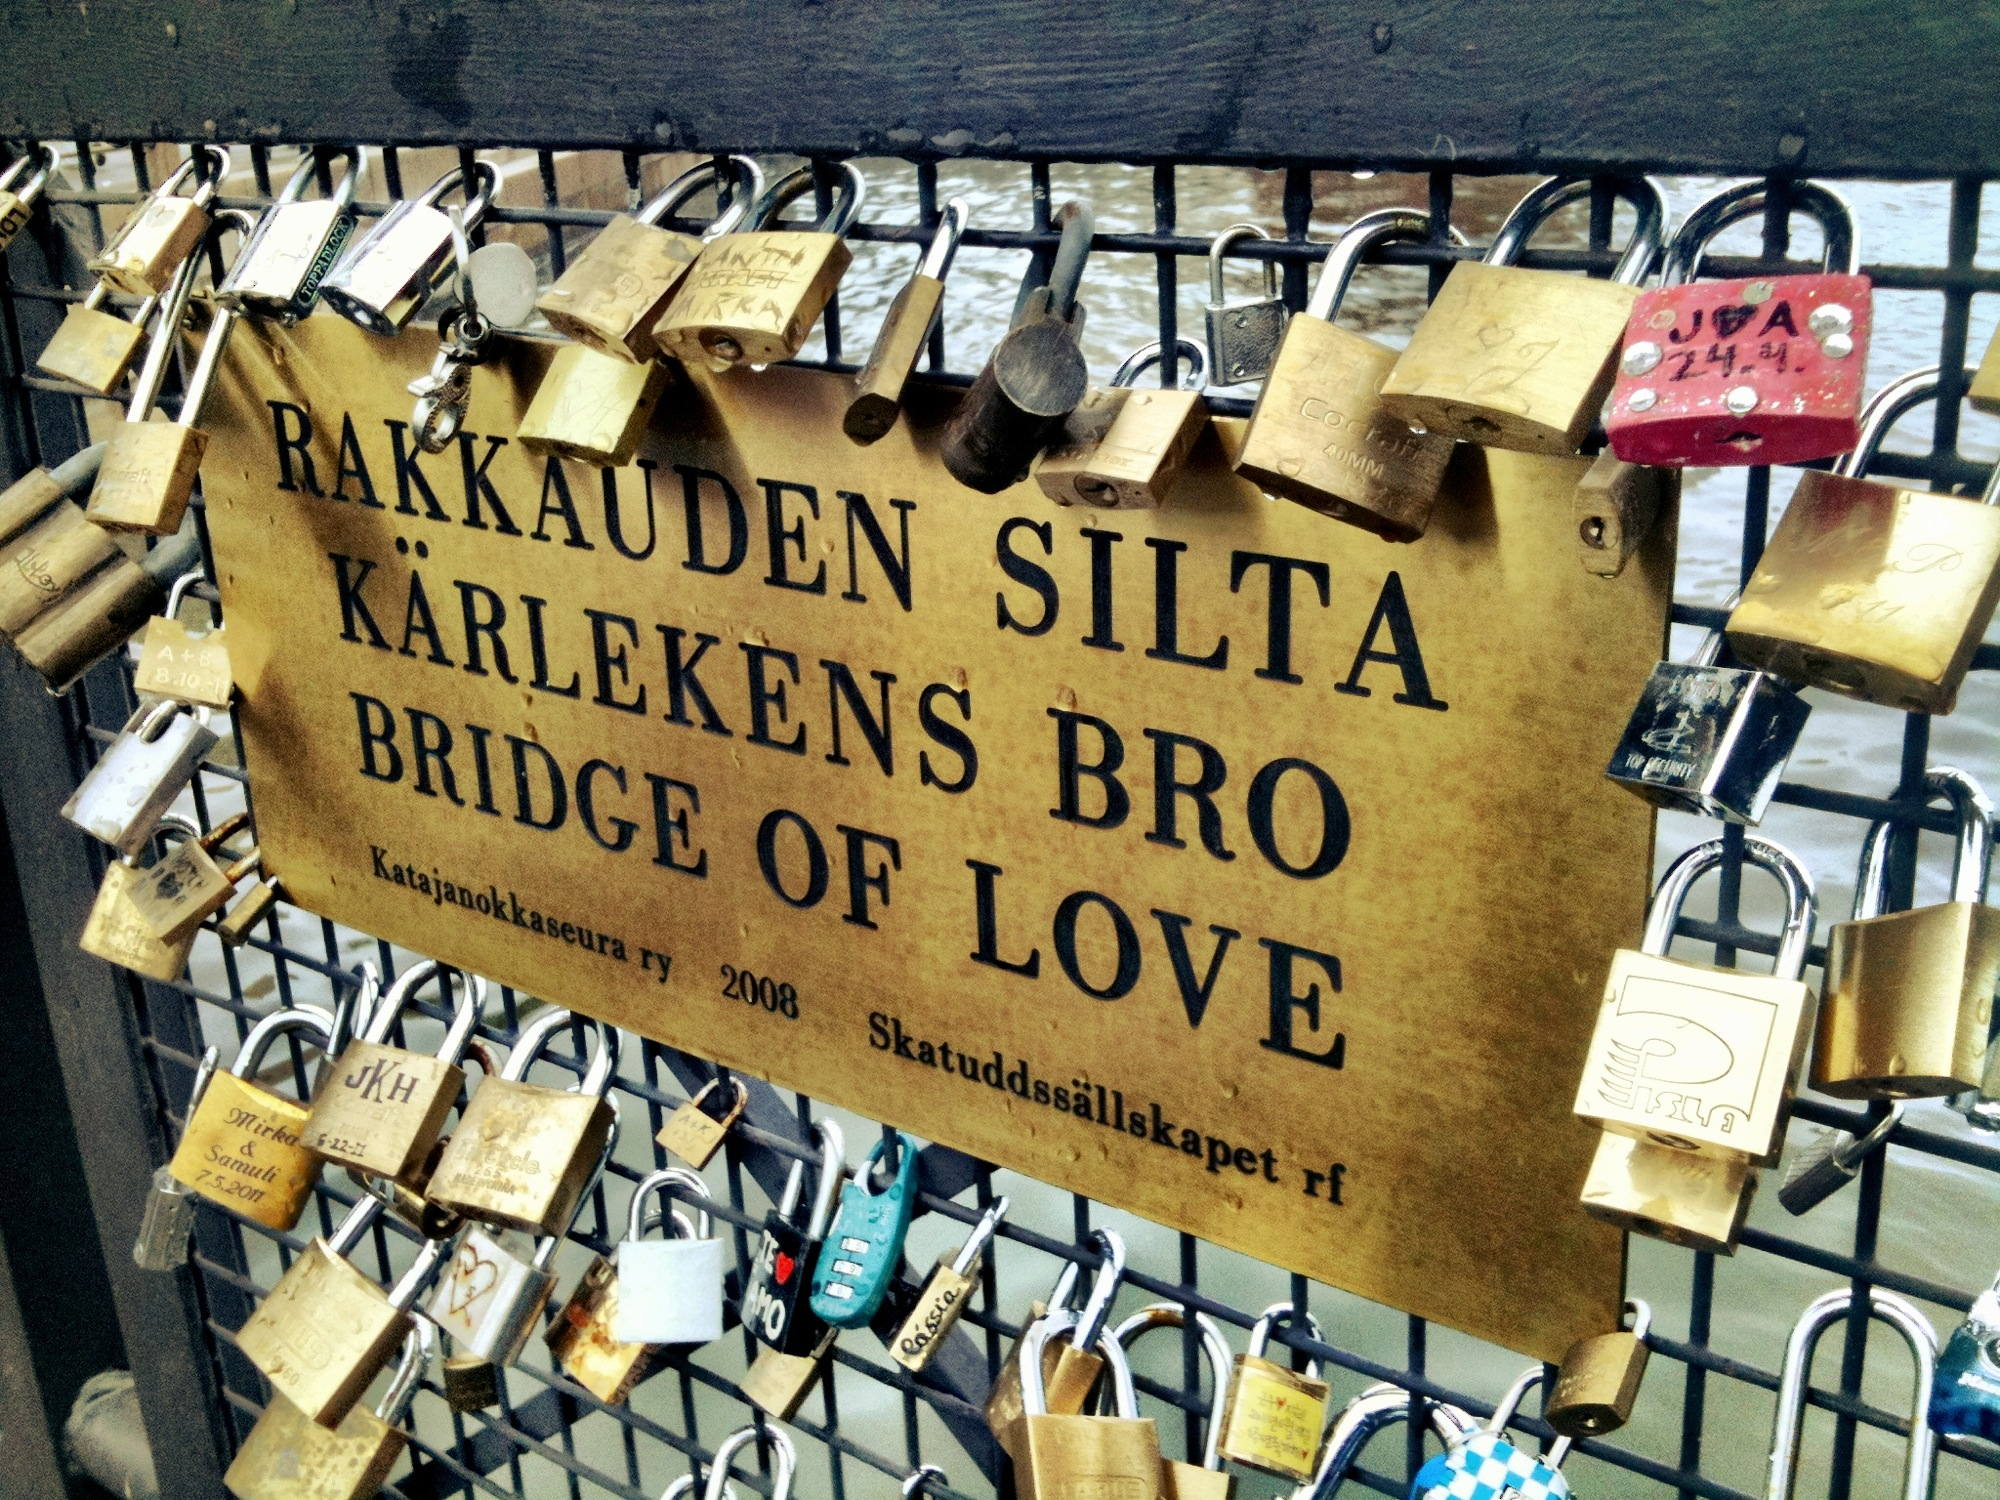 Bridge of Love in Helsinki nahe der Uspenski-Kathedrale